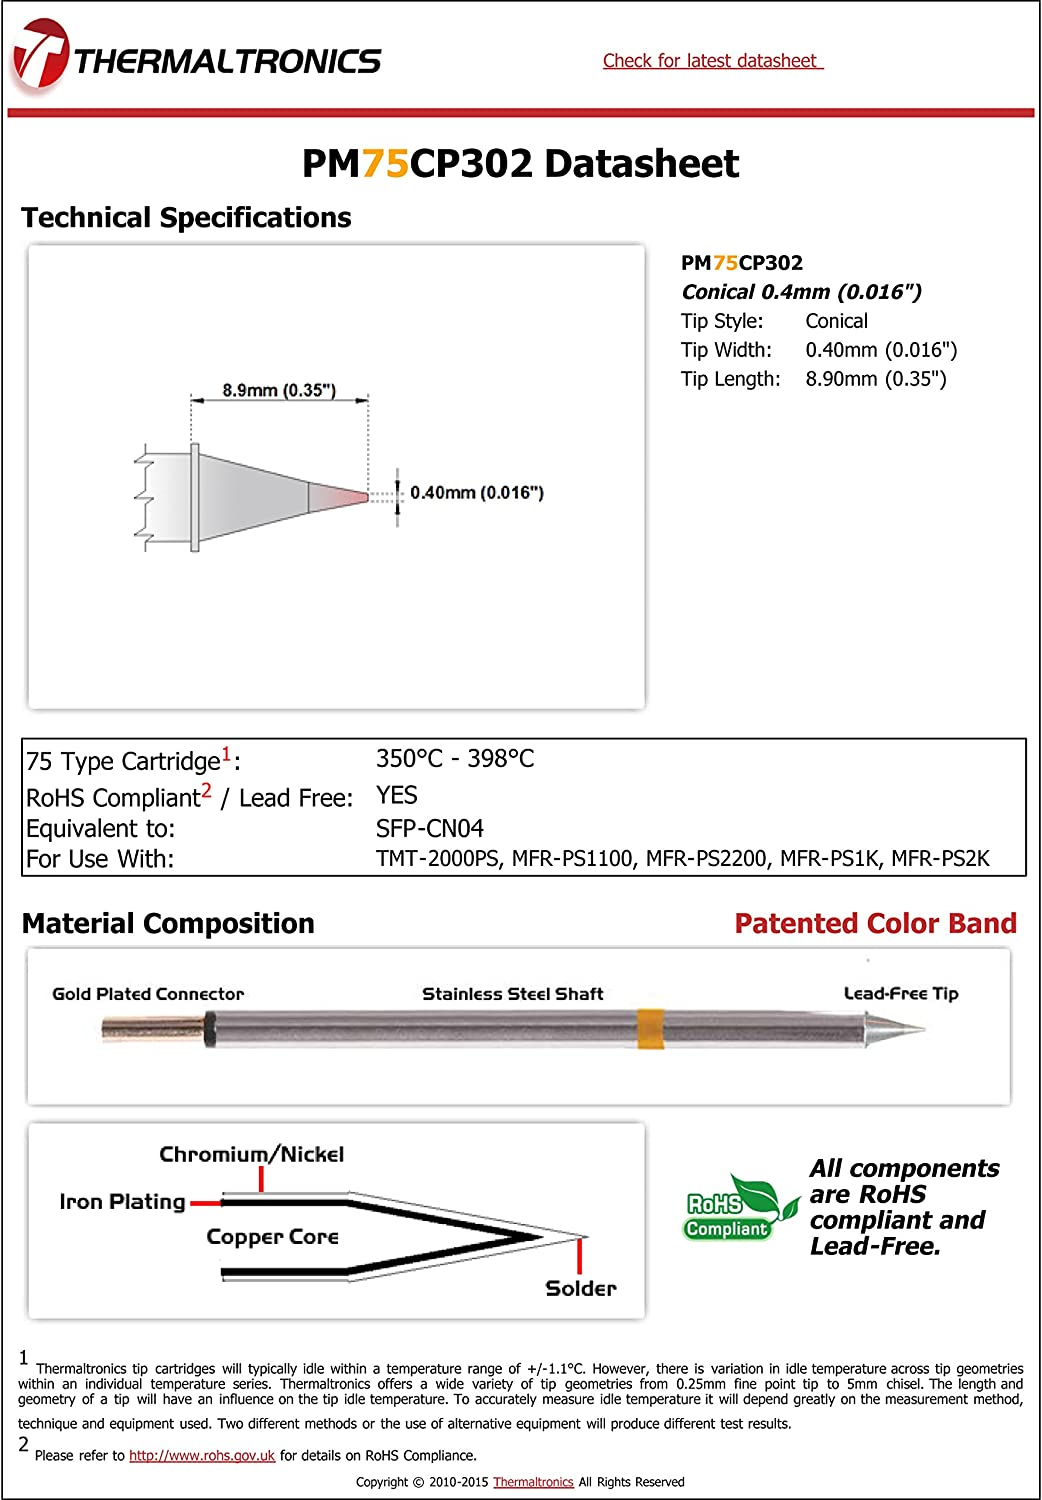 0.016in Thermaltronics PM75CP302 Conical 0.4mm interchangeable for Metcal SFP-CN04